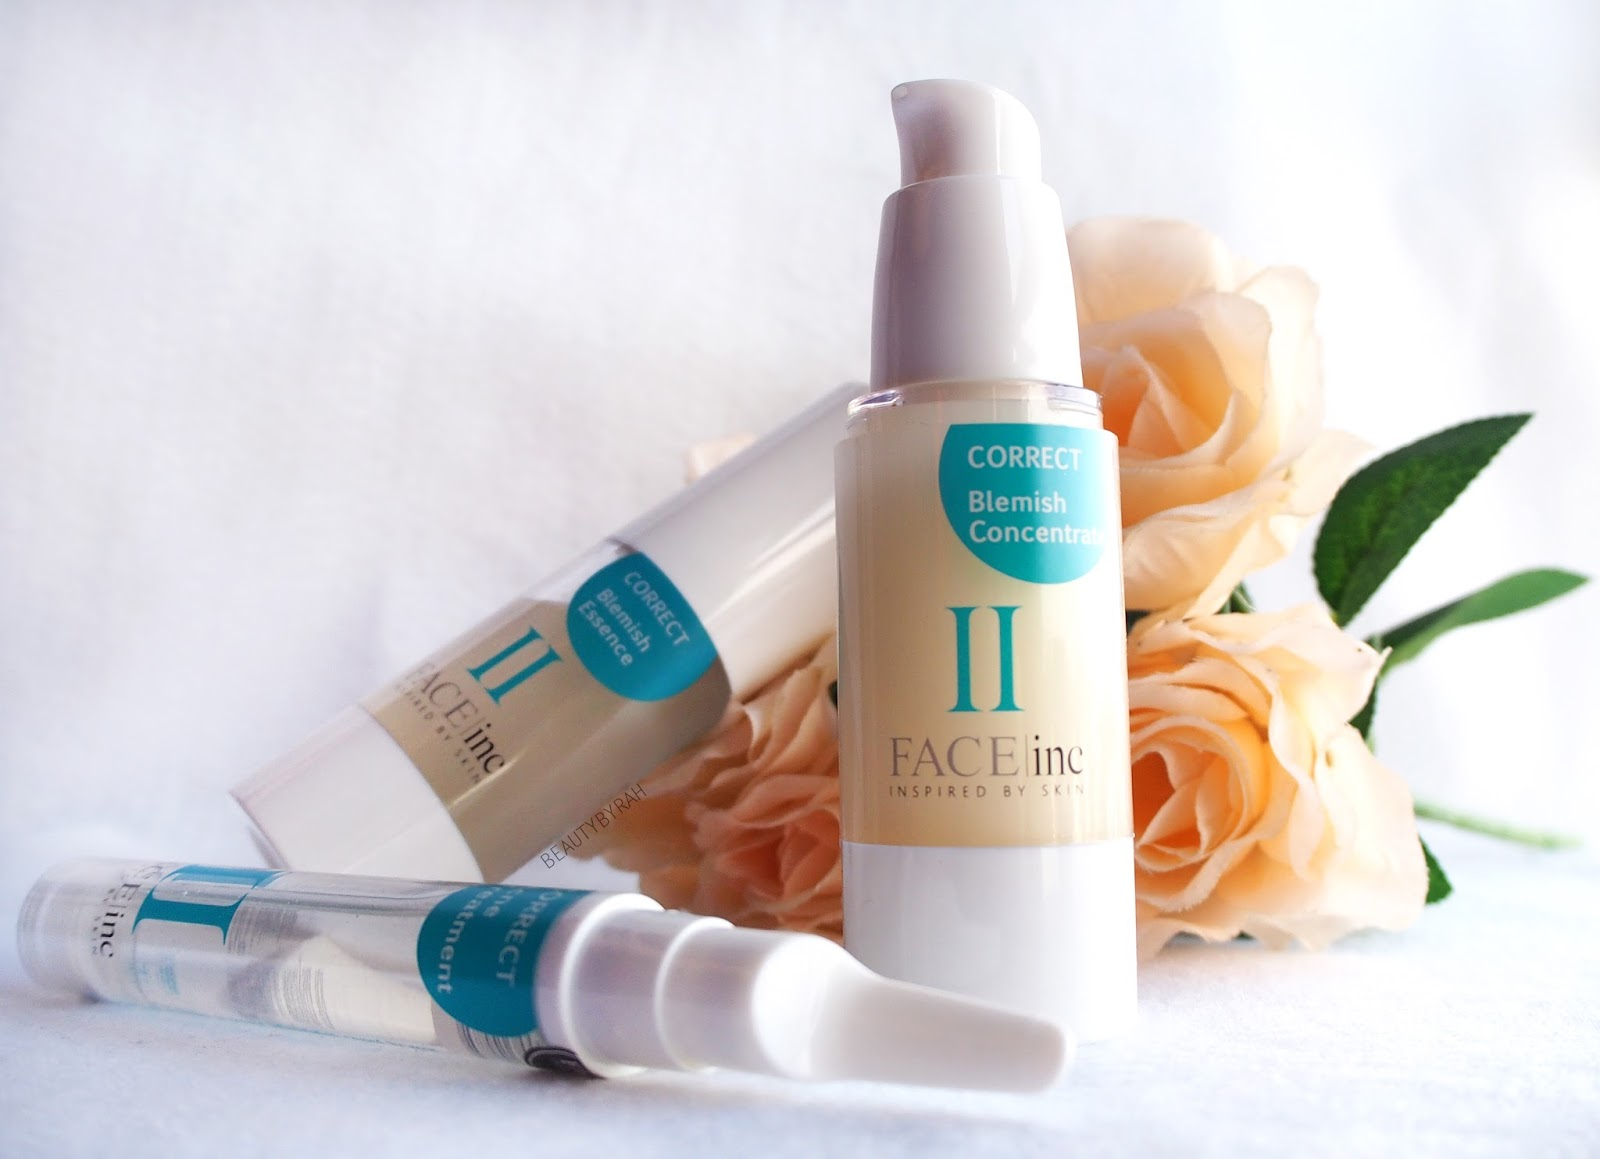 The Face Inc Blemish Trio Set Review